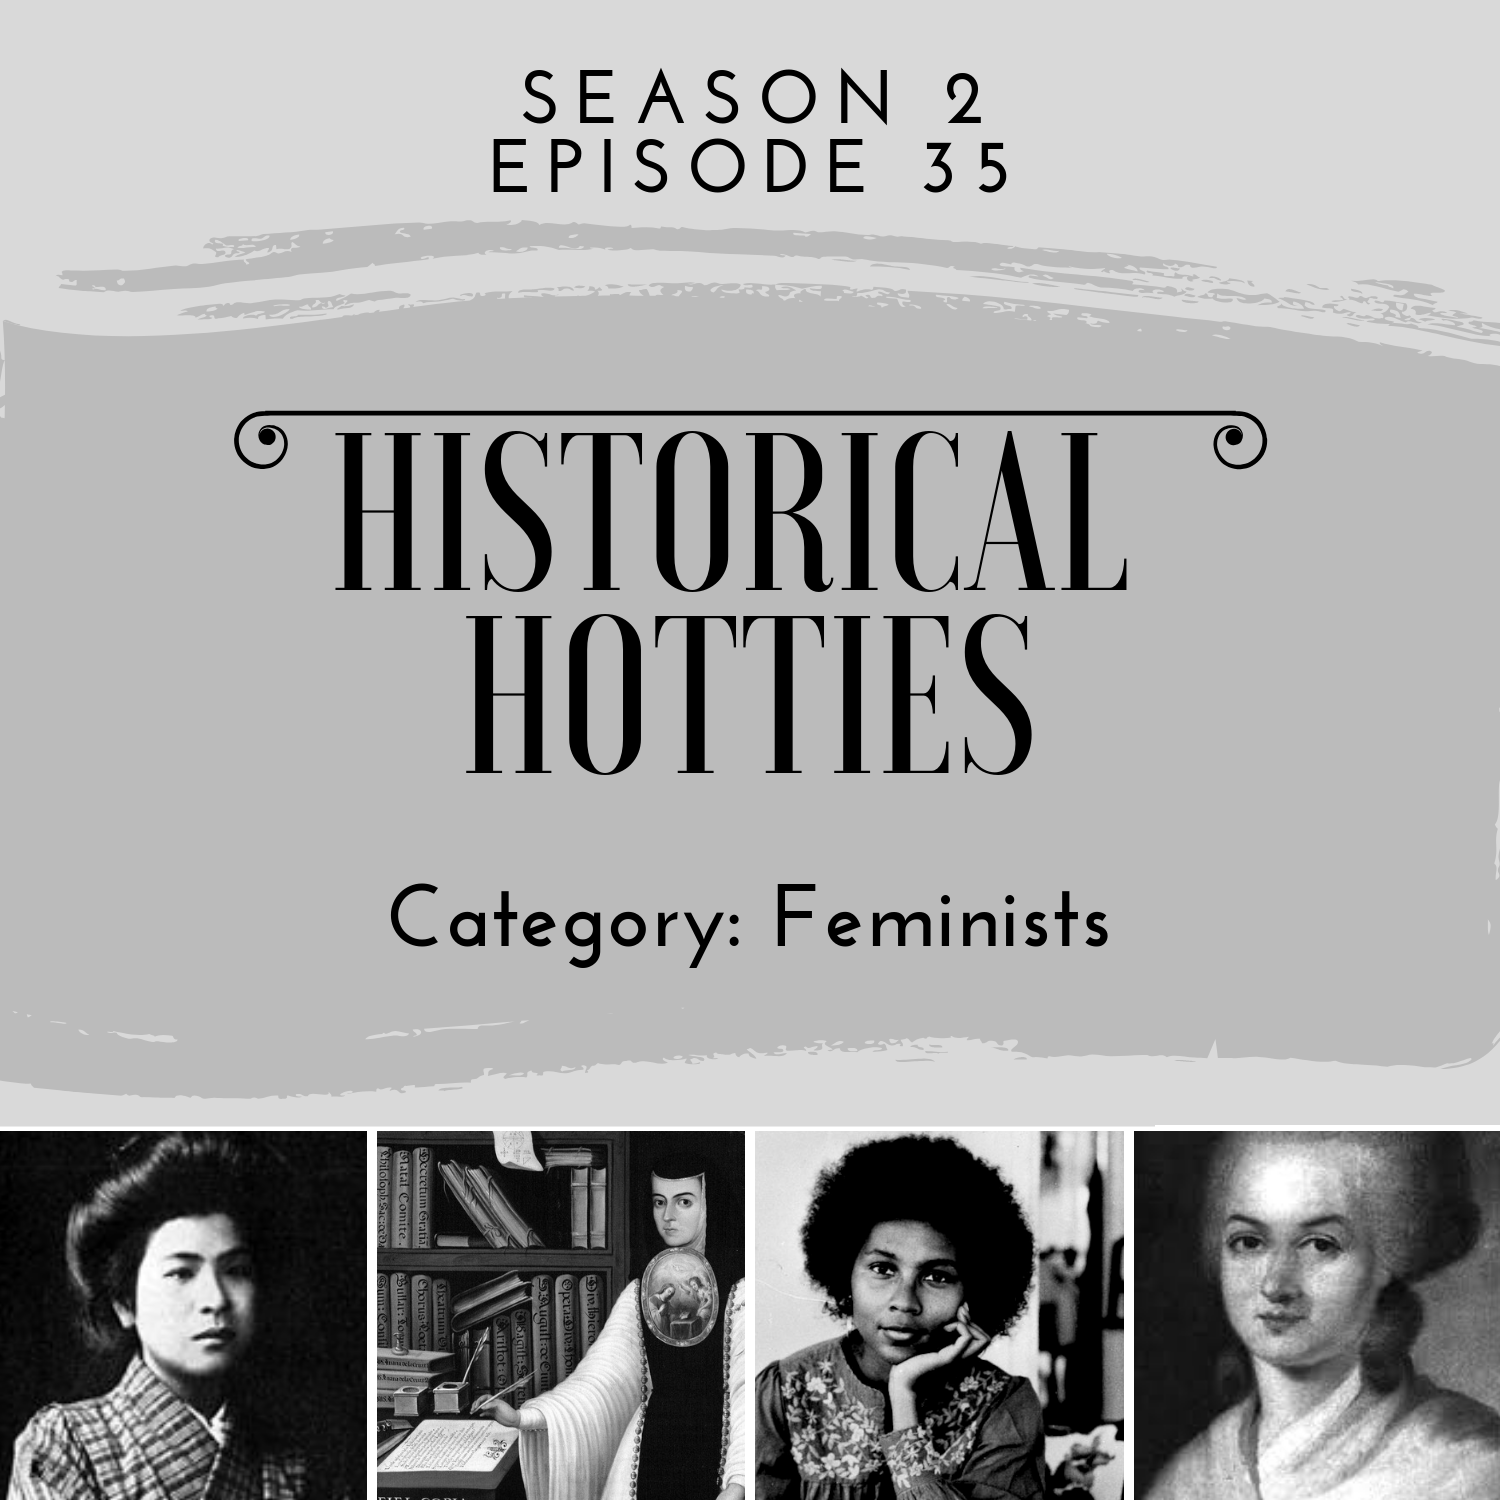 historical hotties feminists